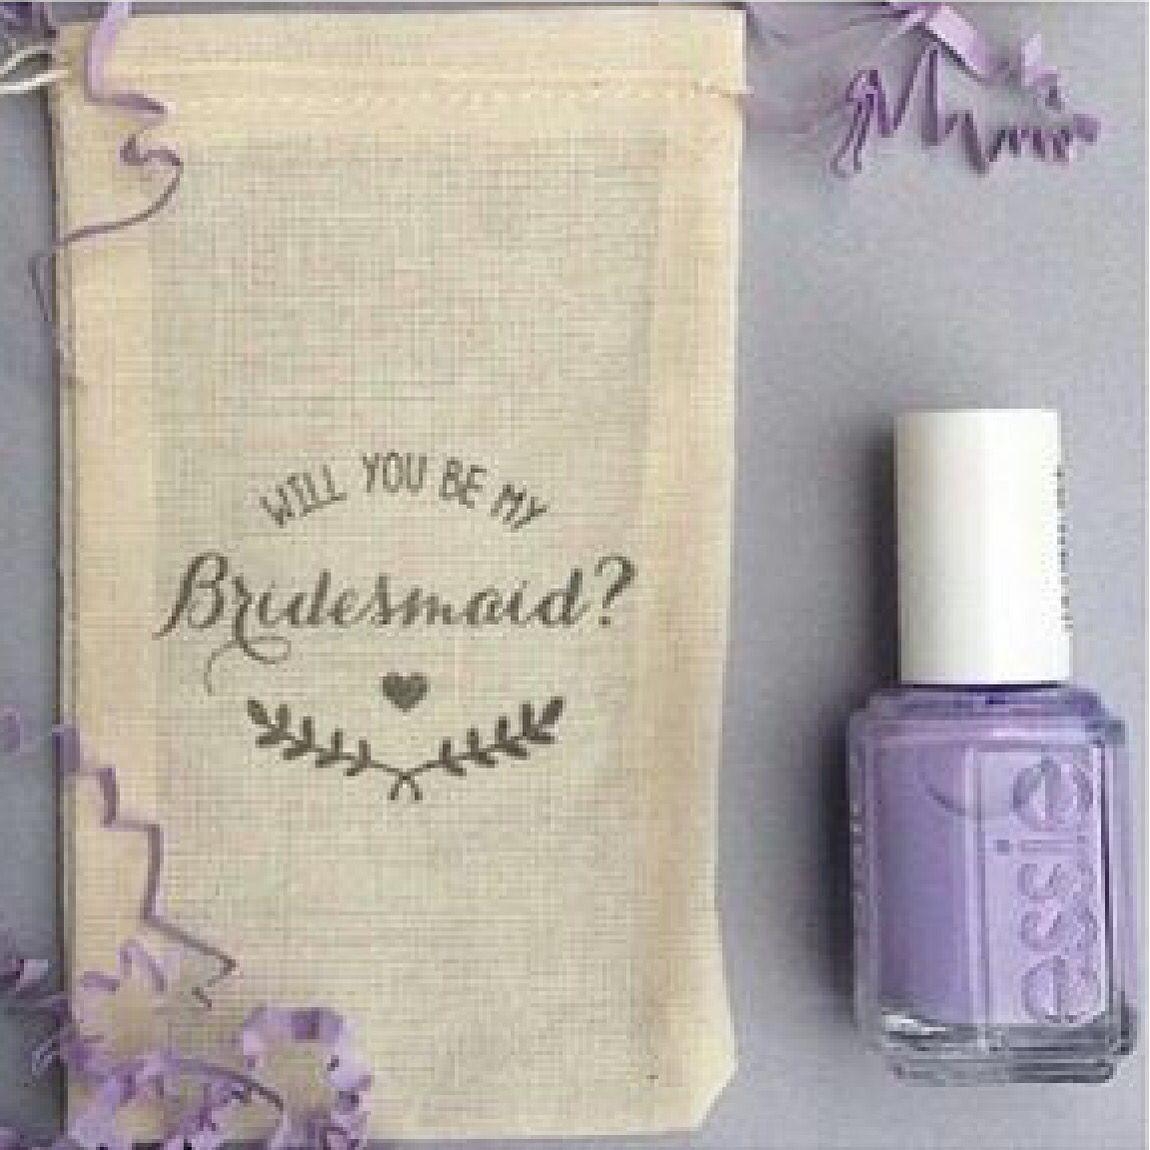 Will you be my bridesmaid? | http://mysweetengagement.com/galleries ...